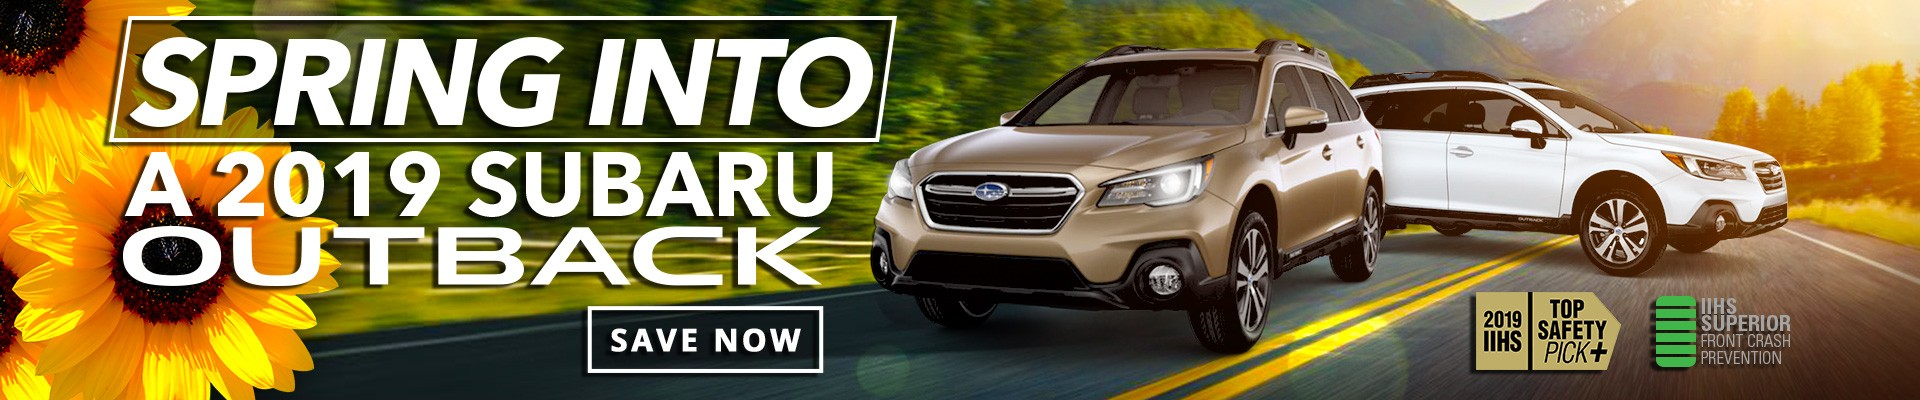 Spring Into a 2019 Subaru Outback with Exclusive Deals on all new 2019 Subaru Models at Our Big Toronto Subaru Sale!